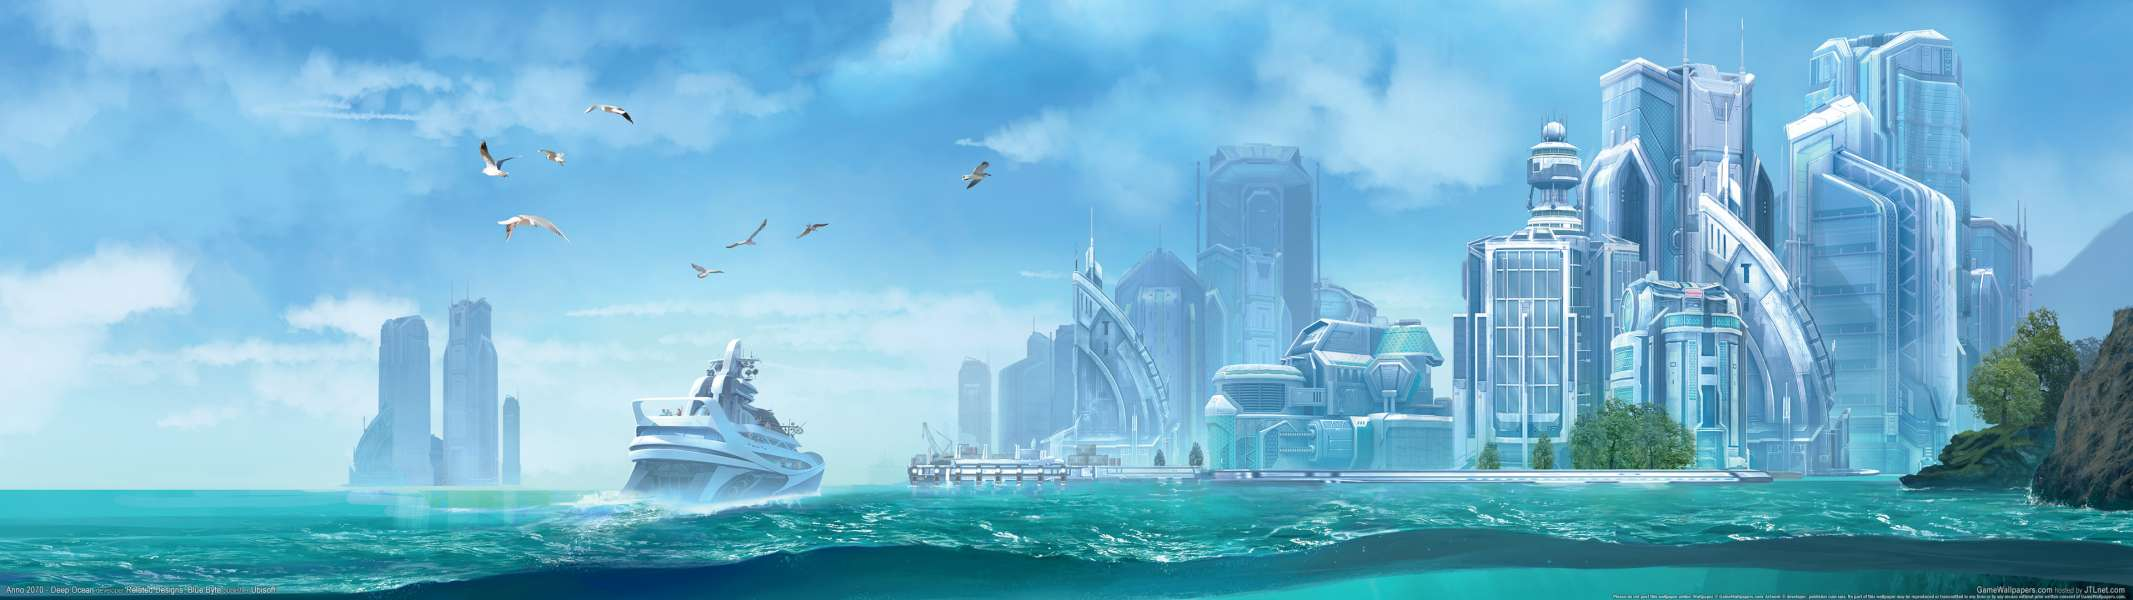 Anno 2070 - Deep Ocean dual screen wallpaper or background